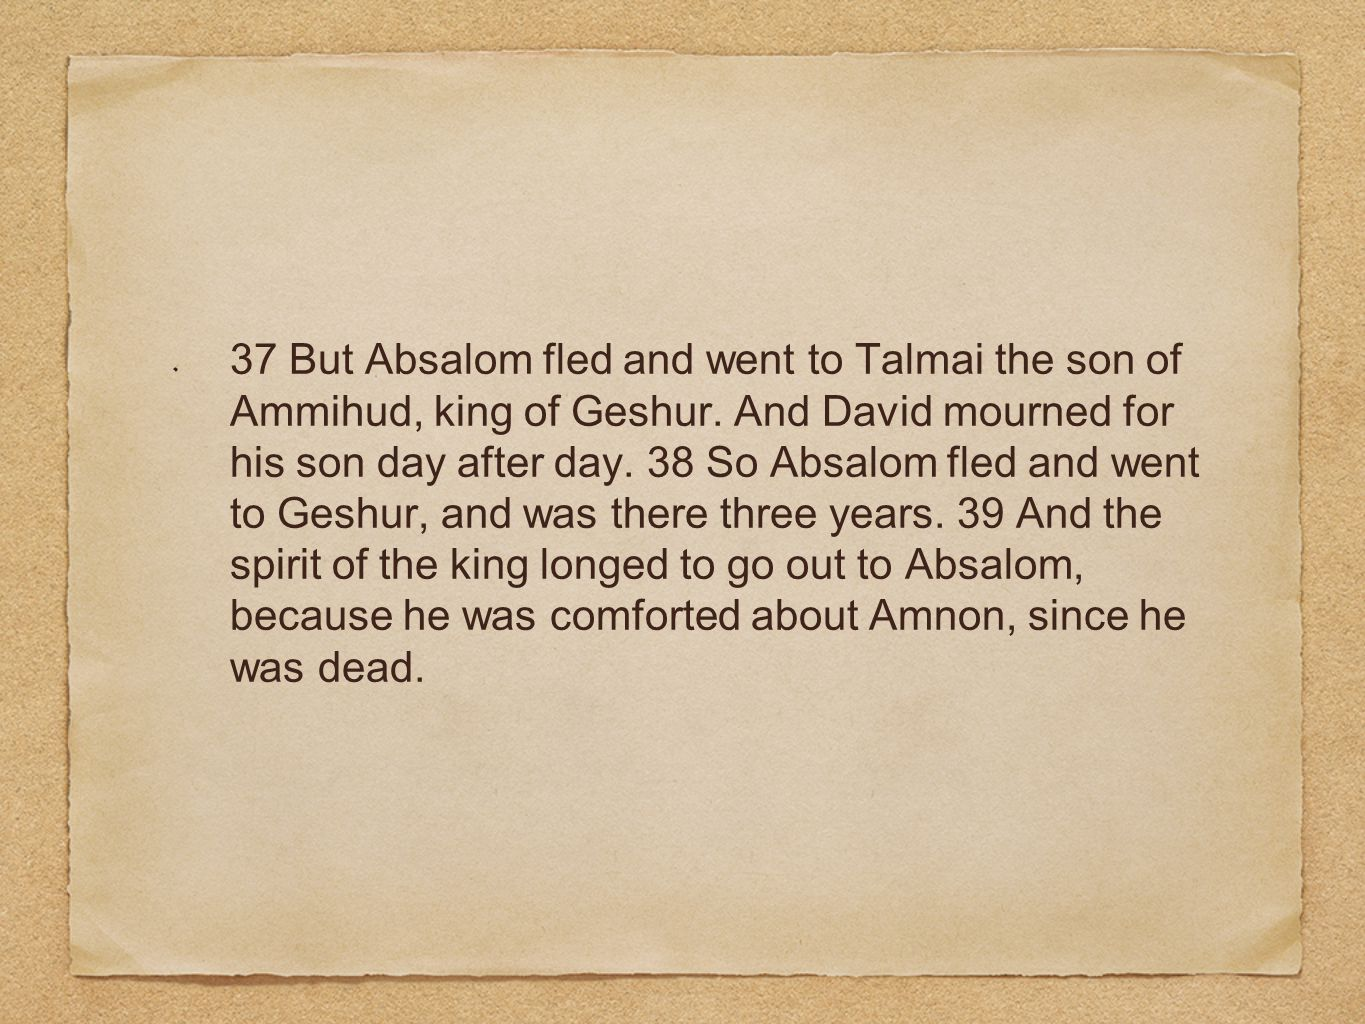 37 But Absalom fled and went to Talmai the son of Ammihud, king of Geshur. And David mourned for his son day after day. 38 So Absalom fled and went to